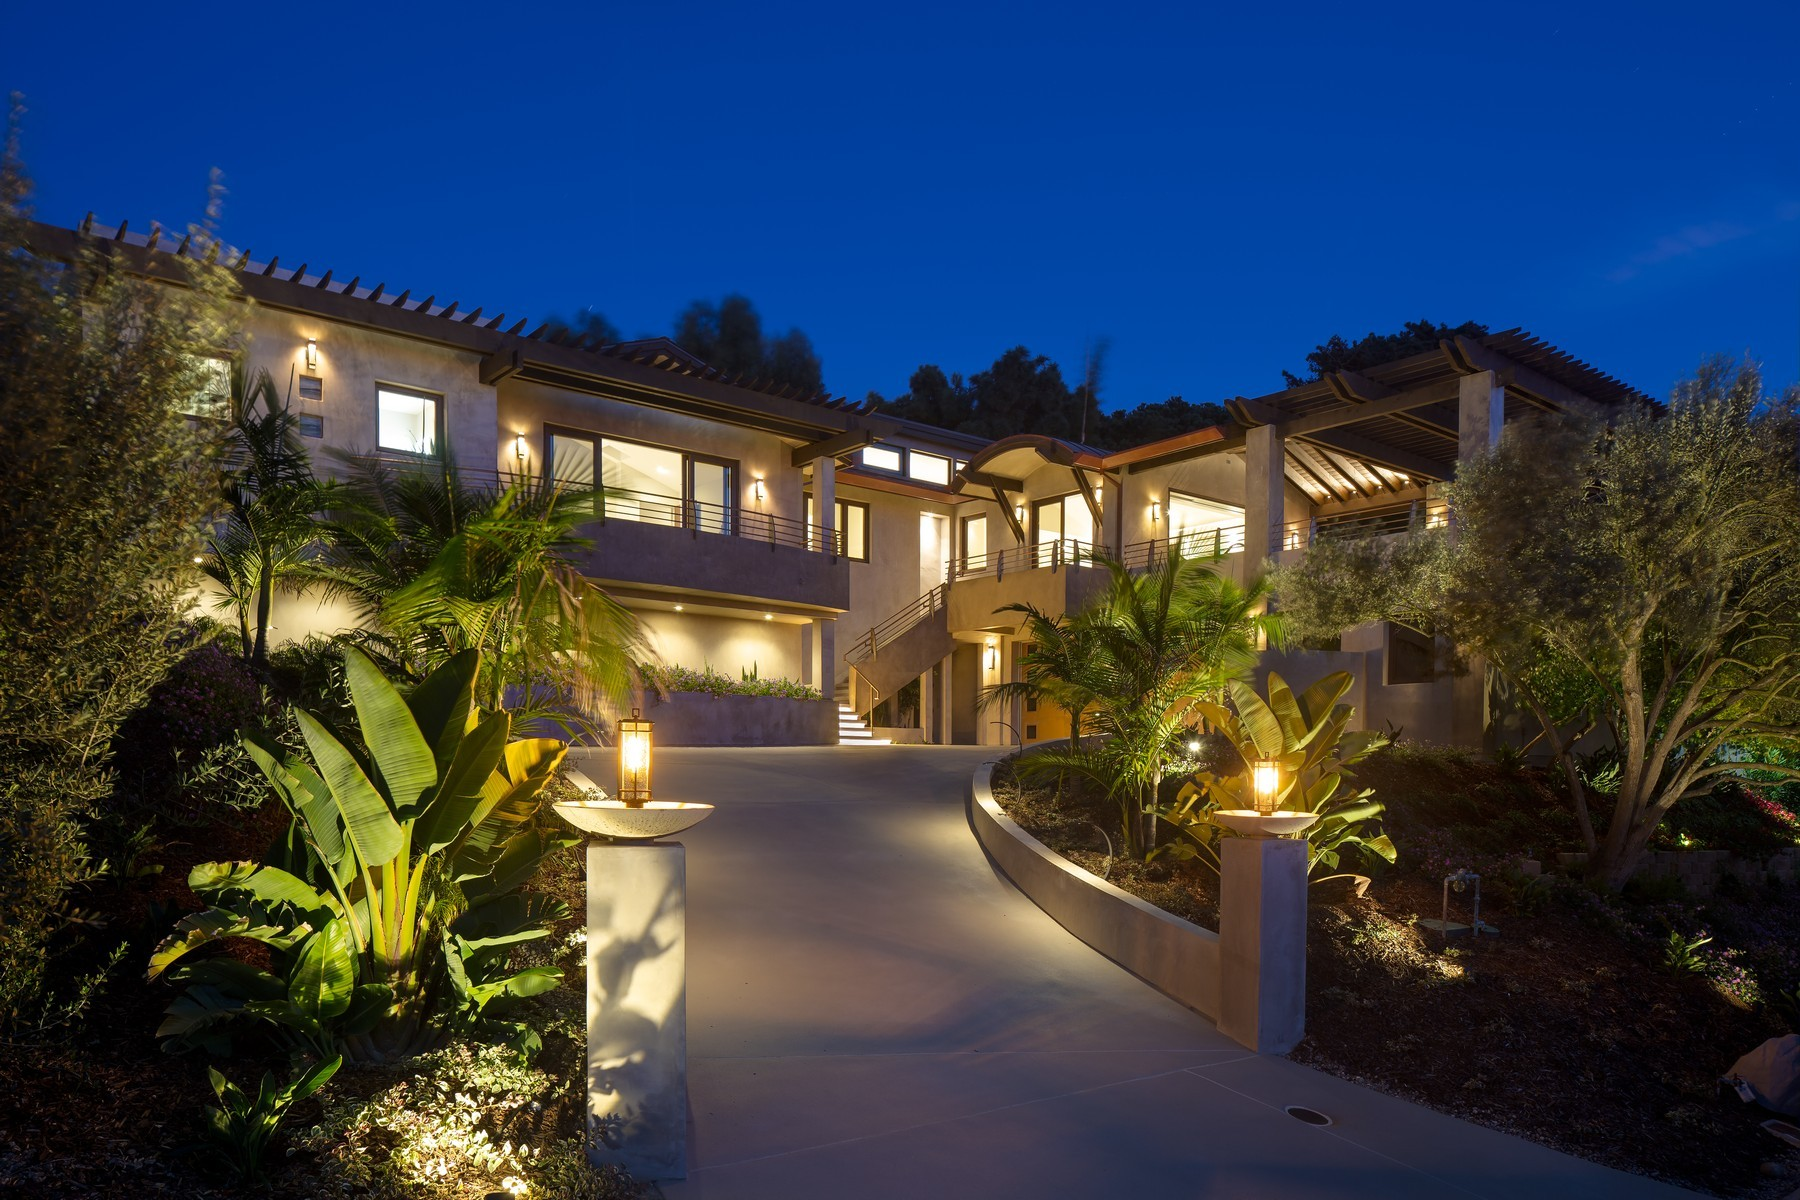 Single Family Homes for Active at New Sustainable and Modern La Jolla Home with Ocean Views 7857 Esterel Dr. La Jolla, California 92037 United States